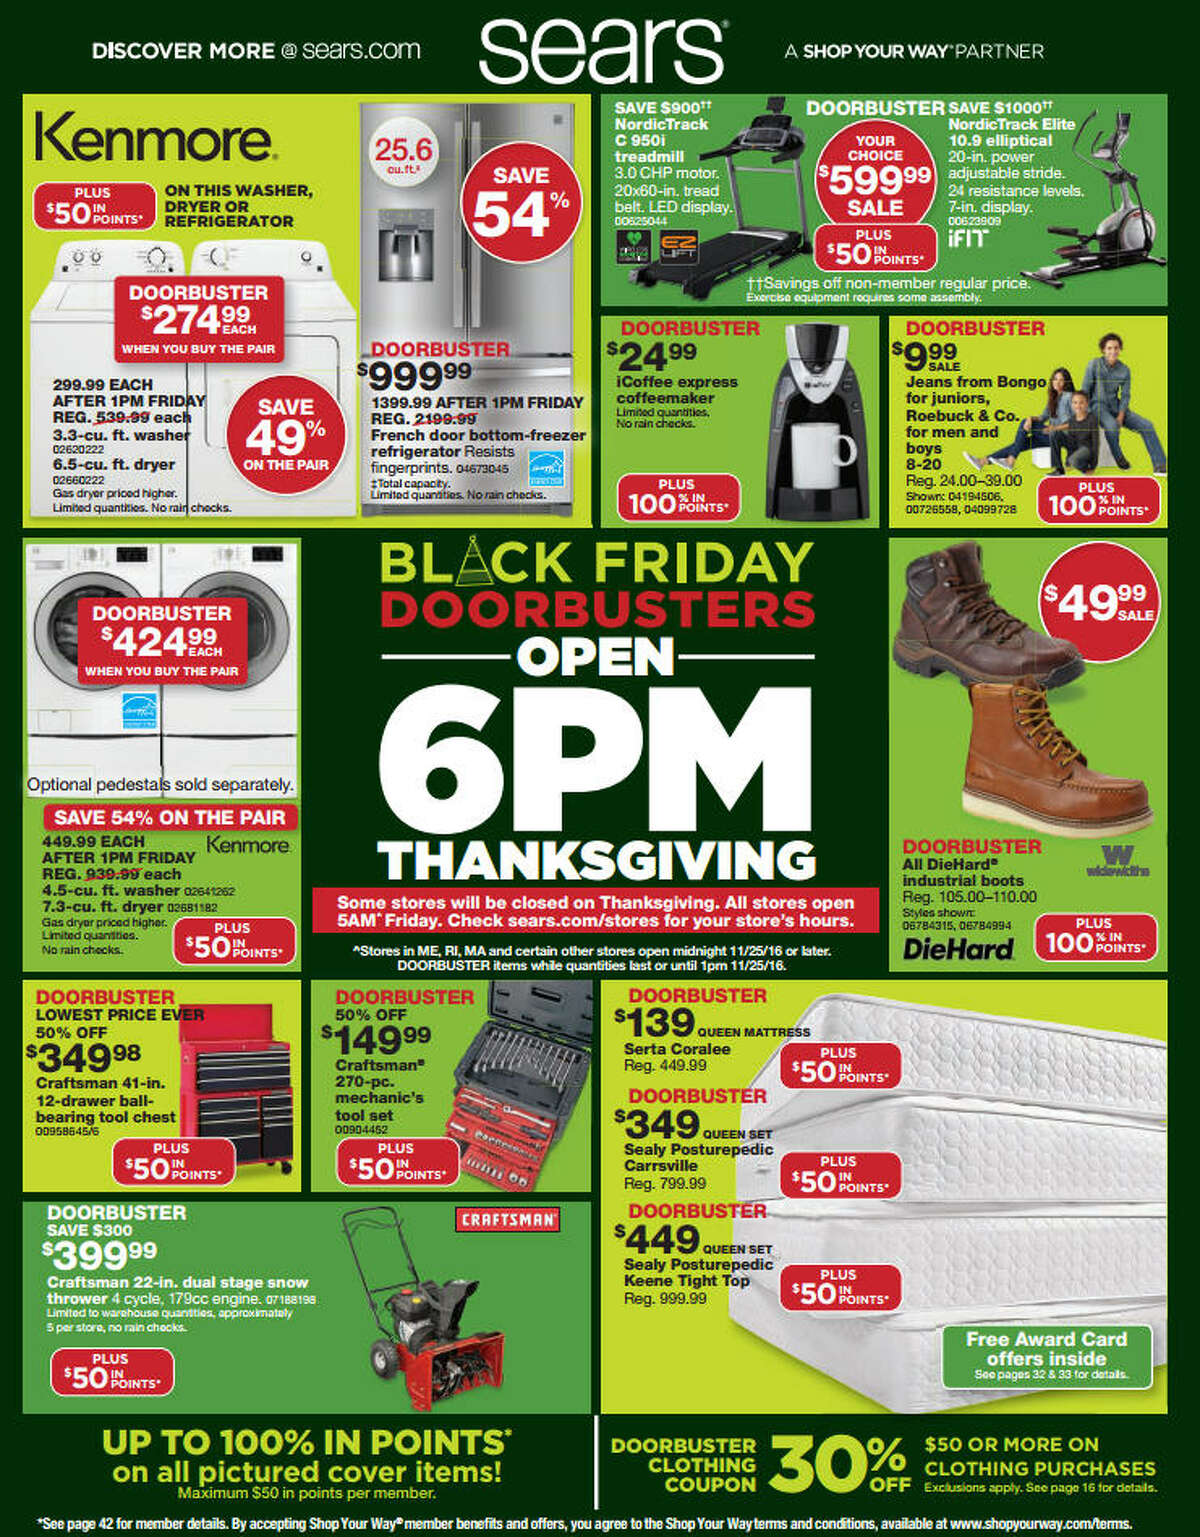 Sears has released its 48-page Black Friday 2016 ad circular. Black Friday Doorbusters prices and promotions will be valid 6 p.m. on Nov. 24-25 in most, but not all, stores. All prices and promotions are subject to change and availability, based on the retailer's determination. Source: Sears